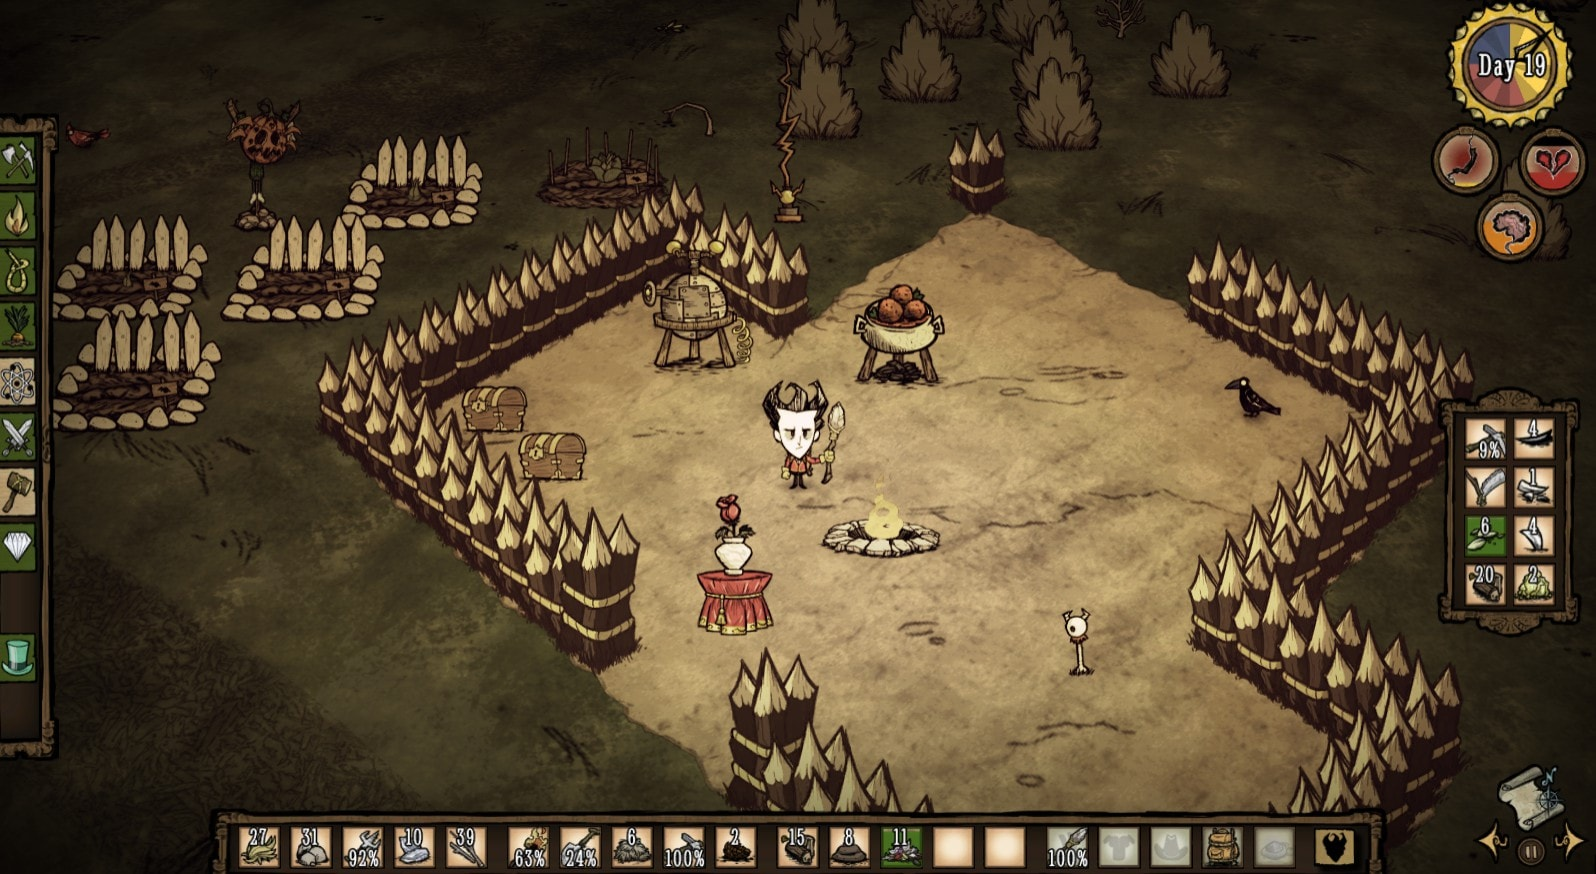 Don't Starve Together (1) - Start 2 Continue